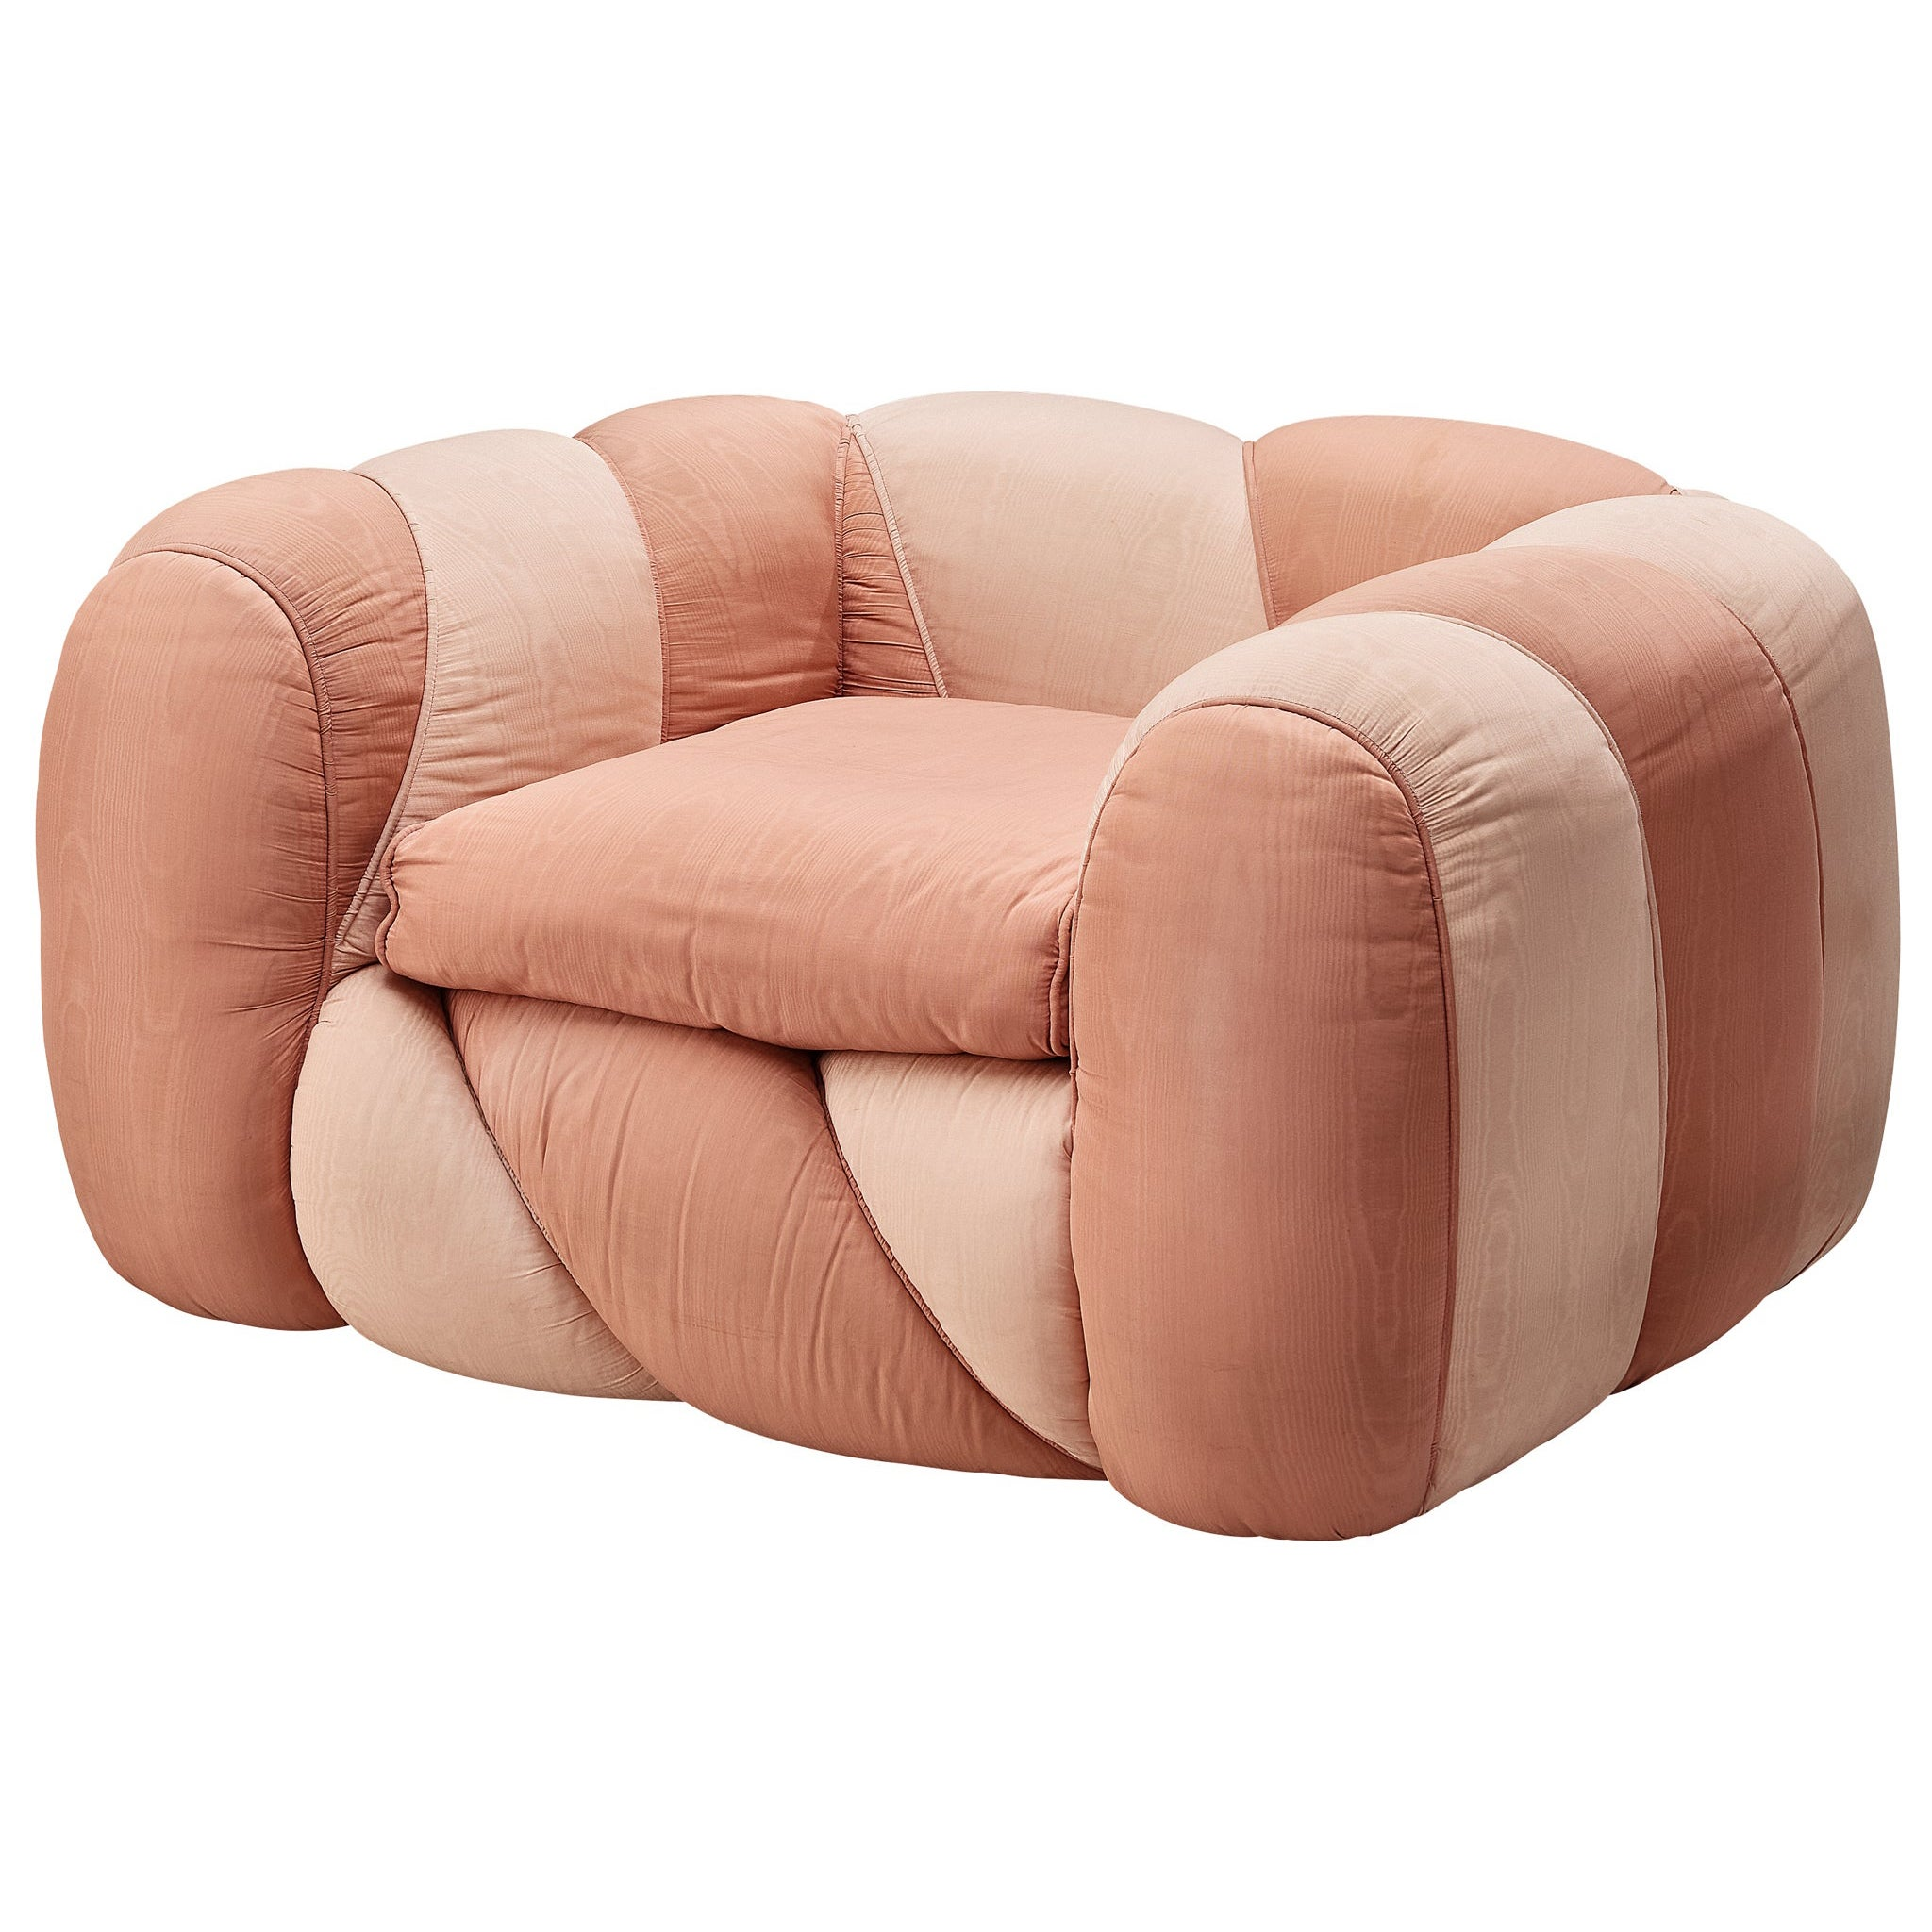 Vivai del Sud Lounge Chair in Pink Fabric Upholstery